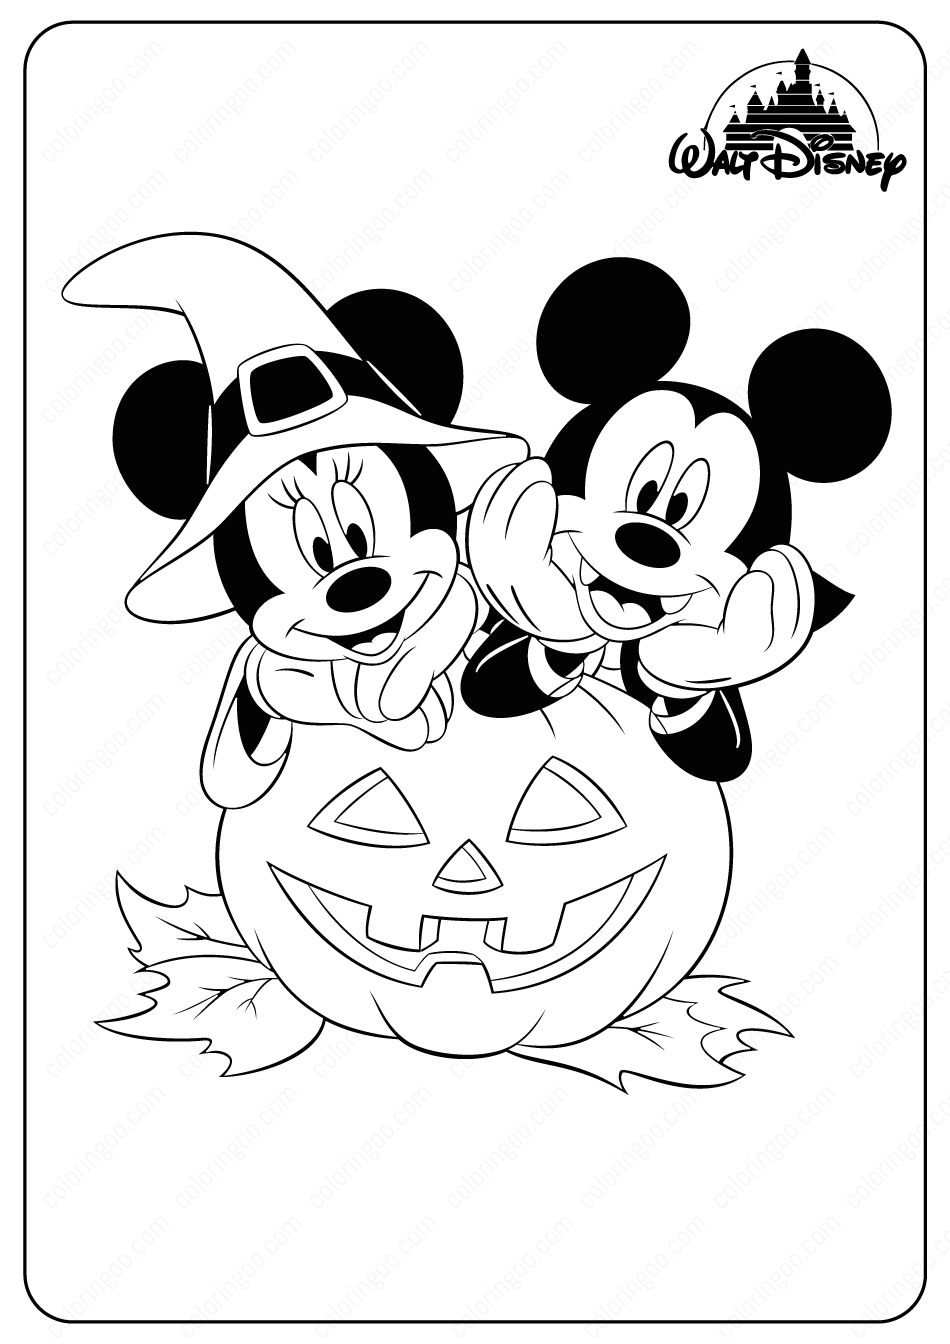 Minnie Mickey Halloween Coloring Pages Halloween Coloring Book Mickey Mouse Coloring Pages Free Halloween Coloring Pages